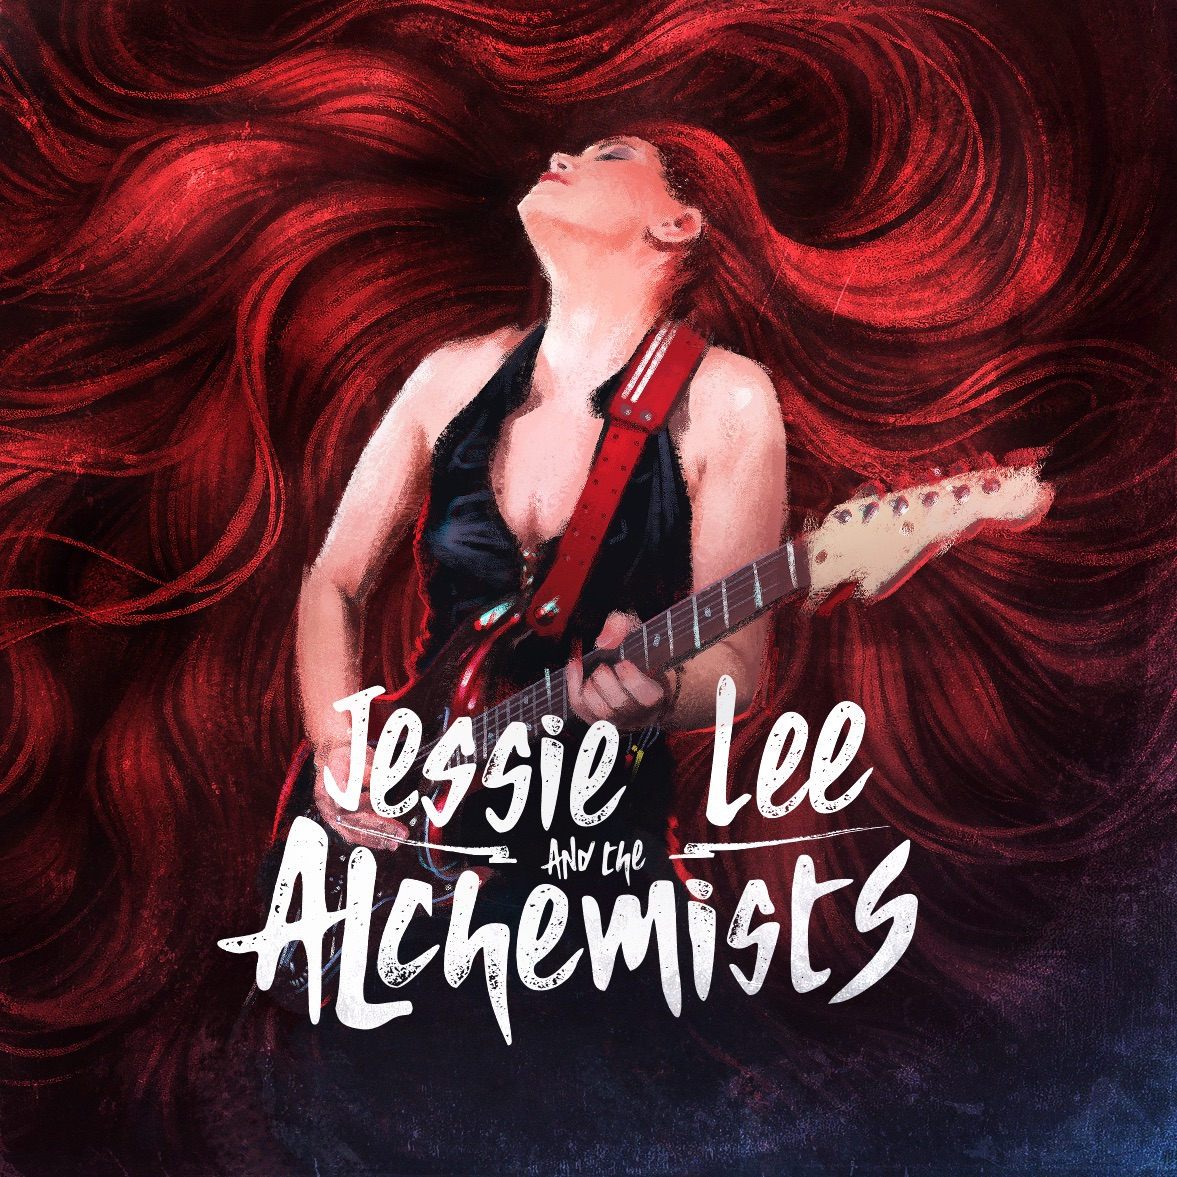 Jessie Lee & the alchimists